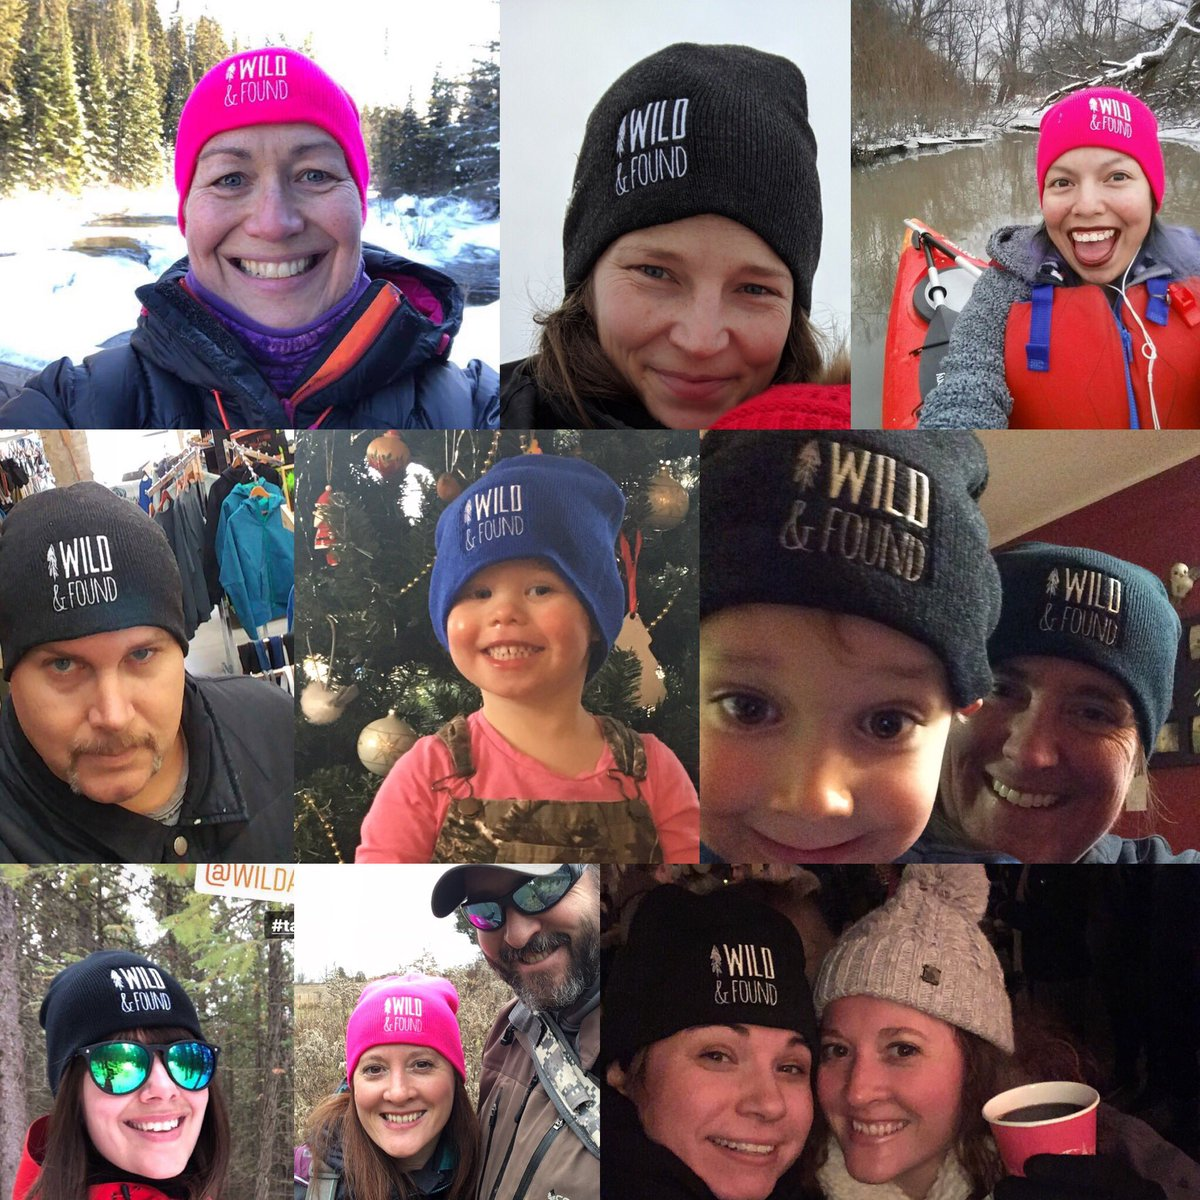 Doing a little giveaway on Instagram! Go check out @wildandfound for a chance to win a new toque for you and a friend! #wildandfound #tagafriend <br>http://pic.twitter.com/nVasvh2Rcm